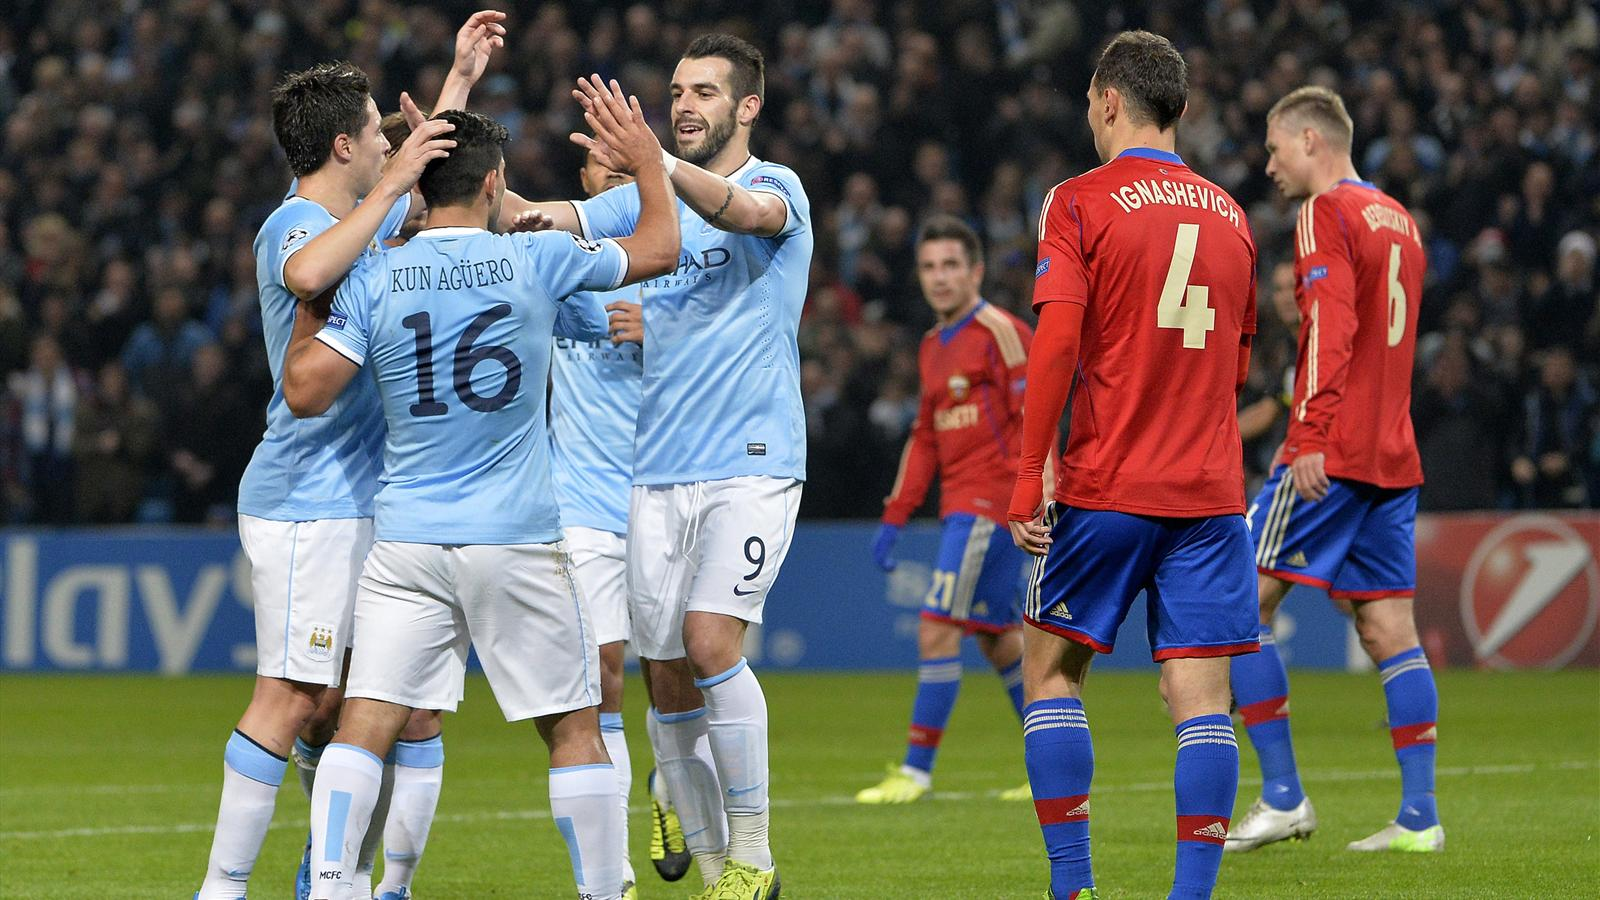 Match CSKA Moscou vs Manchester City en direct live streaming